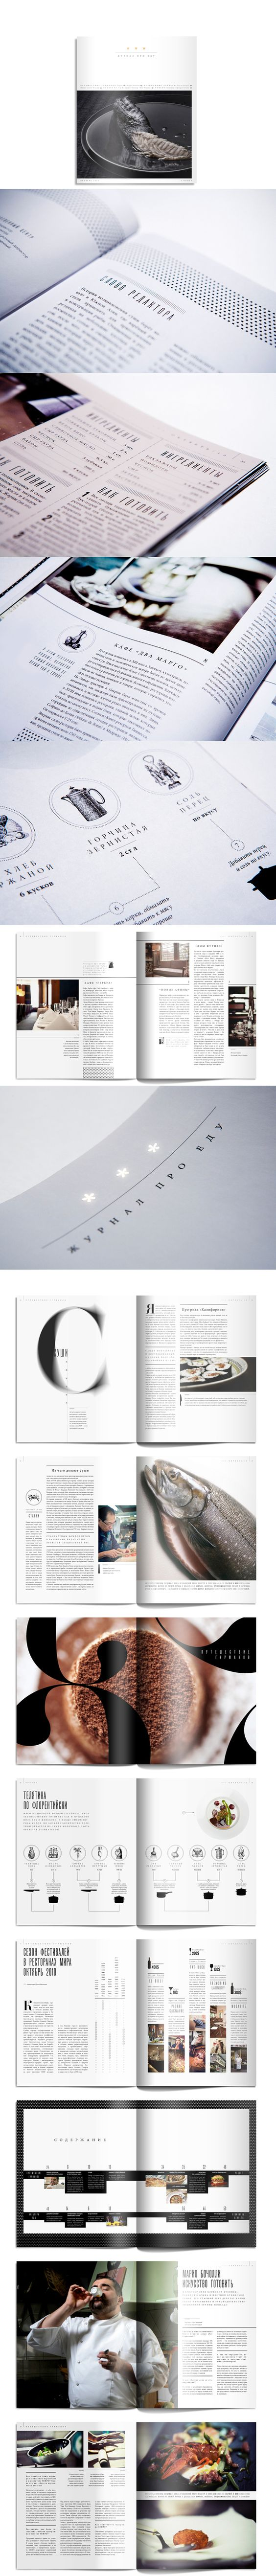 Creative magazine design inspirations: Three stars Food Magazine Editorial Design